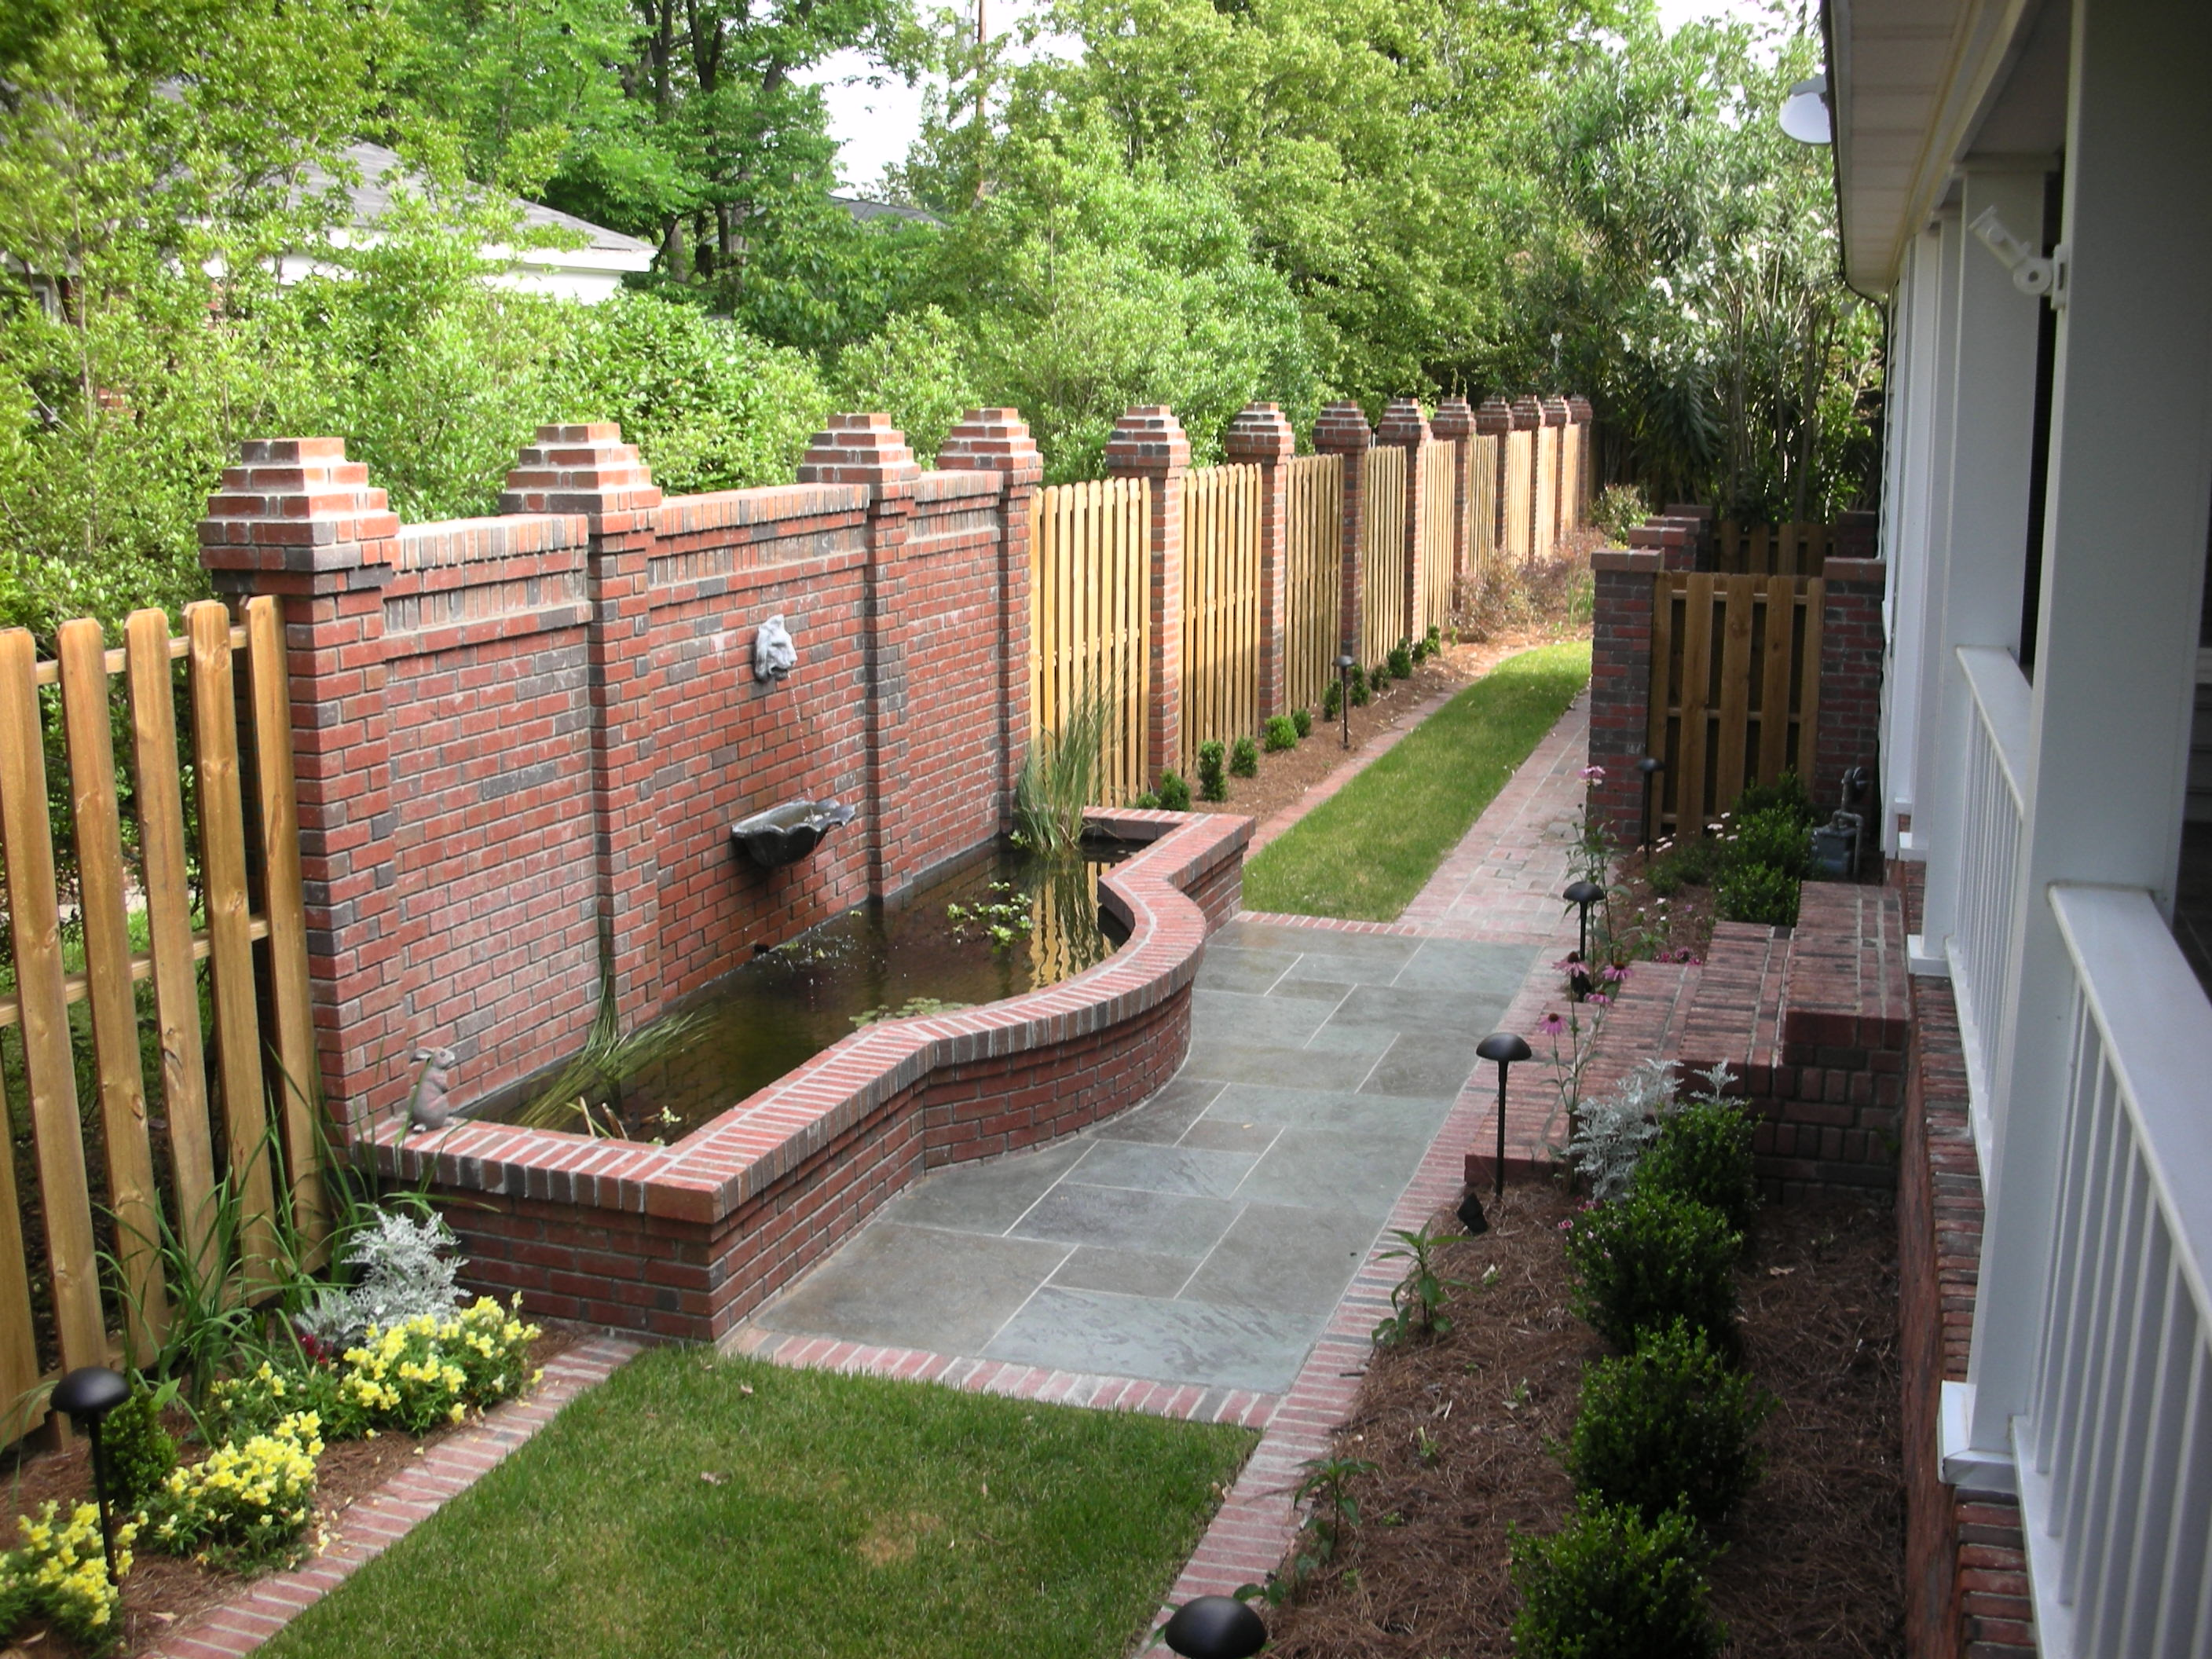 Southern Vistas Is A Full Service Landscape Design/Build Company. In  Addition, Since 2008 We Have Operated What Has Become A Very Highly  Regarded Garden ...